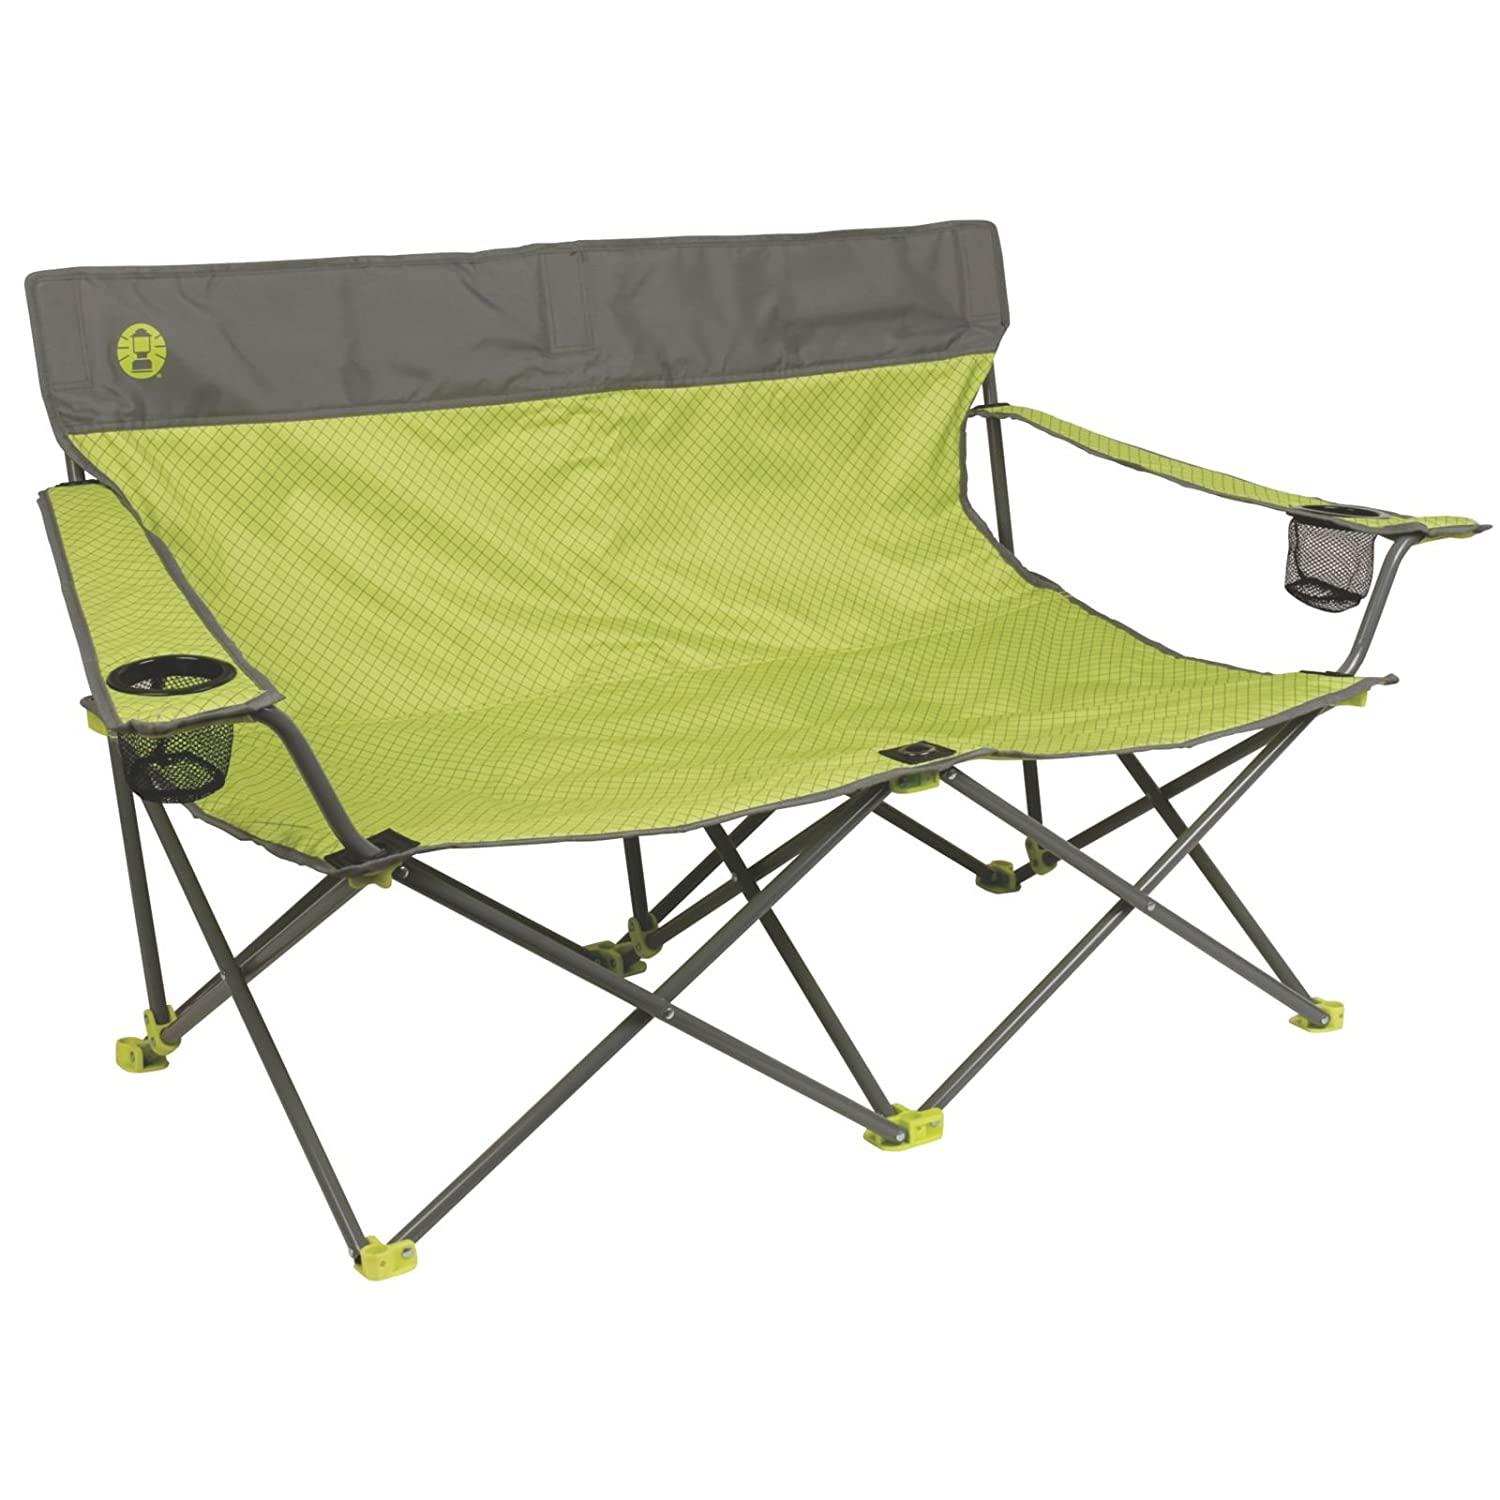 Unique Double Folding Camping Chair Inspirational